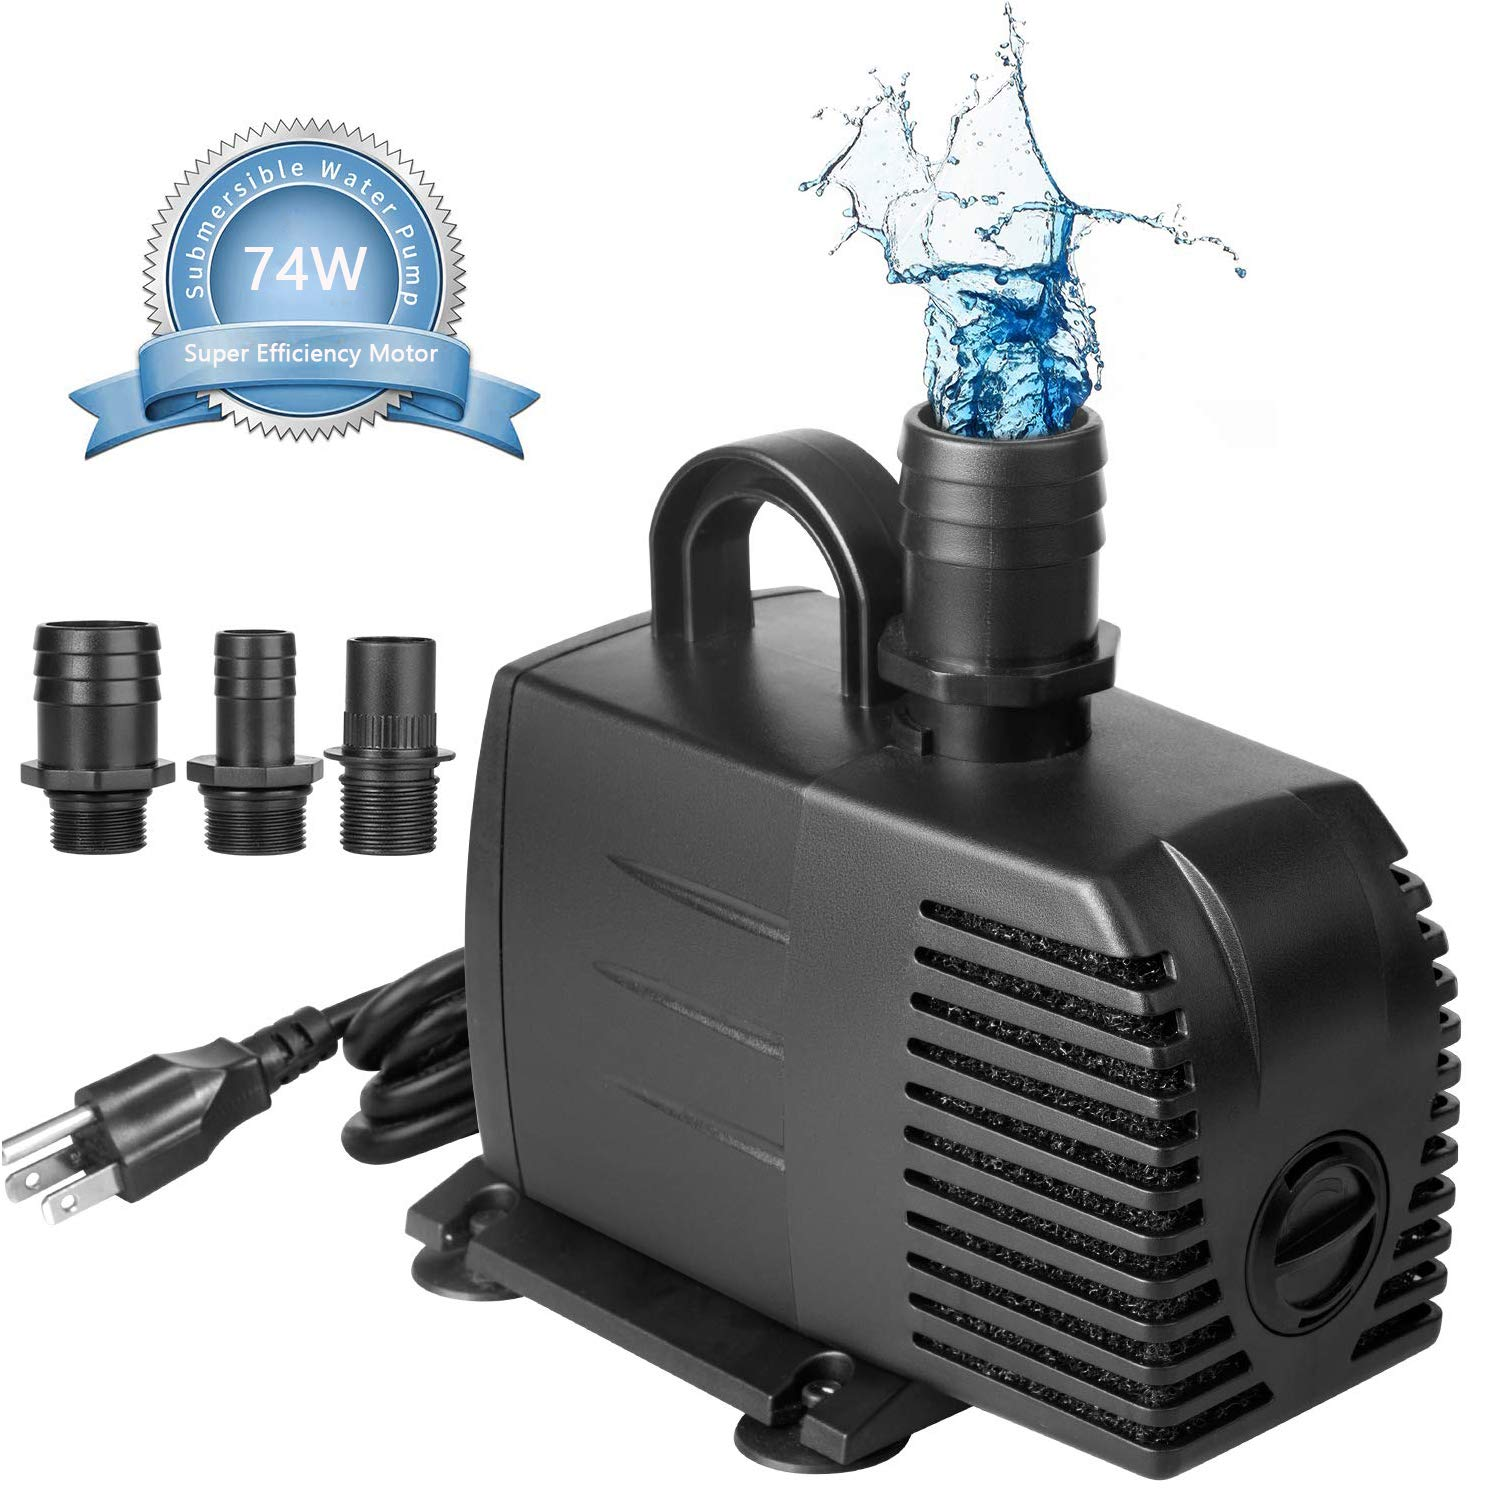 AsFrost 600GPH Submersible Water Pump, Fountain Pump with 9.5ft High Lift, Ultra Quiet 74W Outdoor Fountain Water Pump with 6.2ft Power Cord, 3 Nozzles for Aquarium, Fish Tank, Pond, Hydroponics  by AsFrost